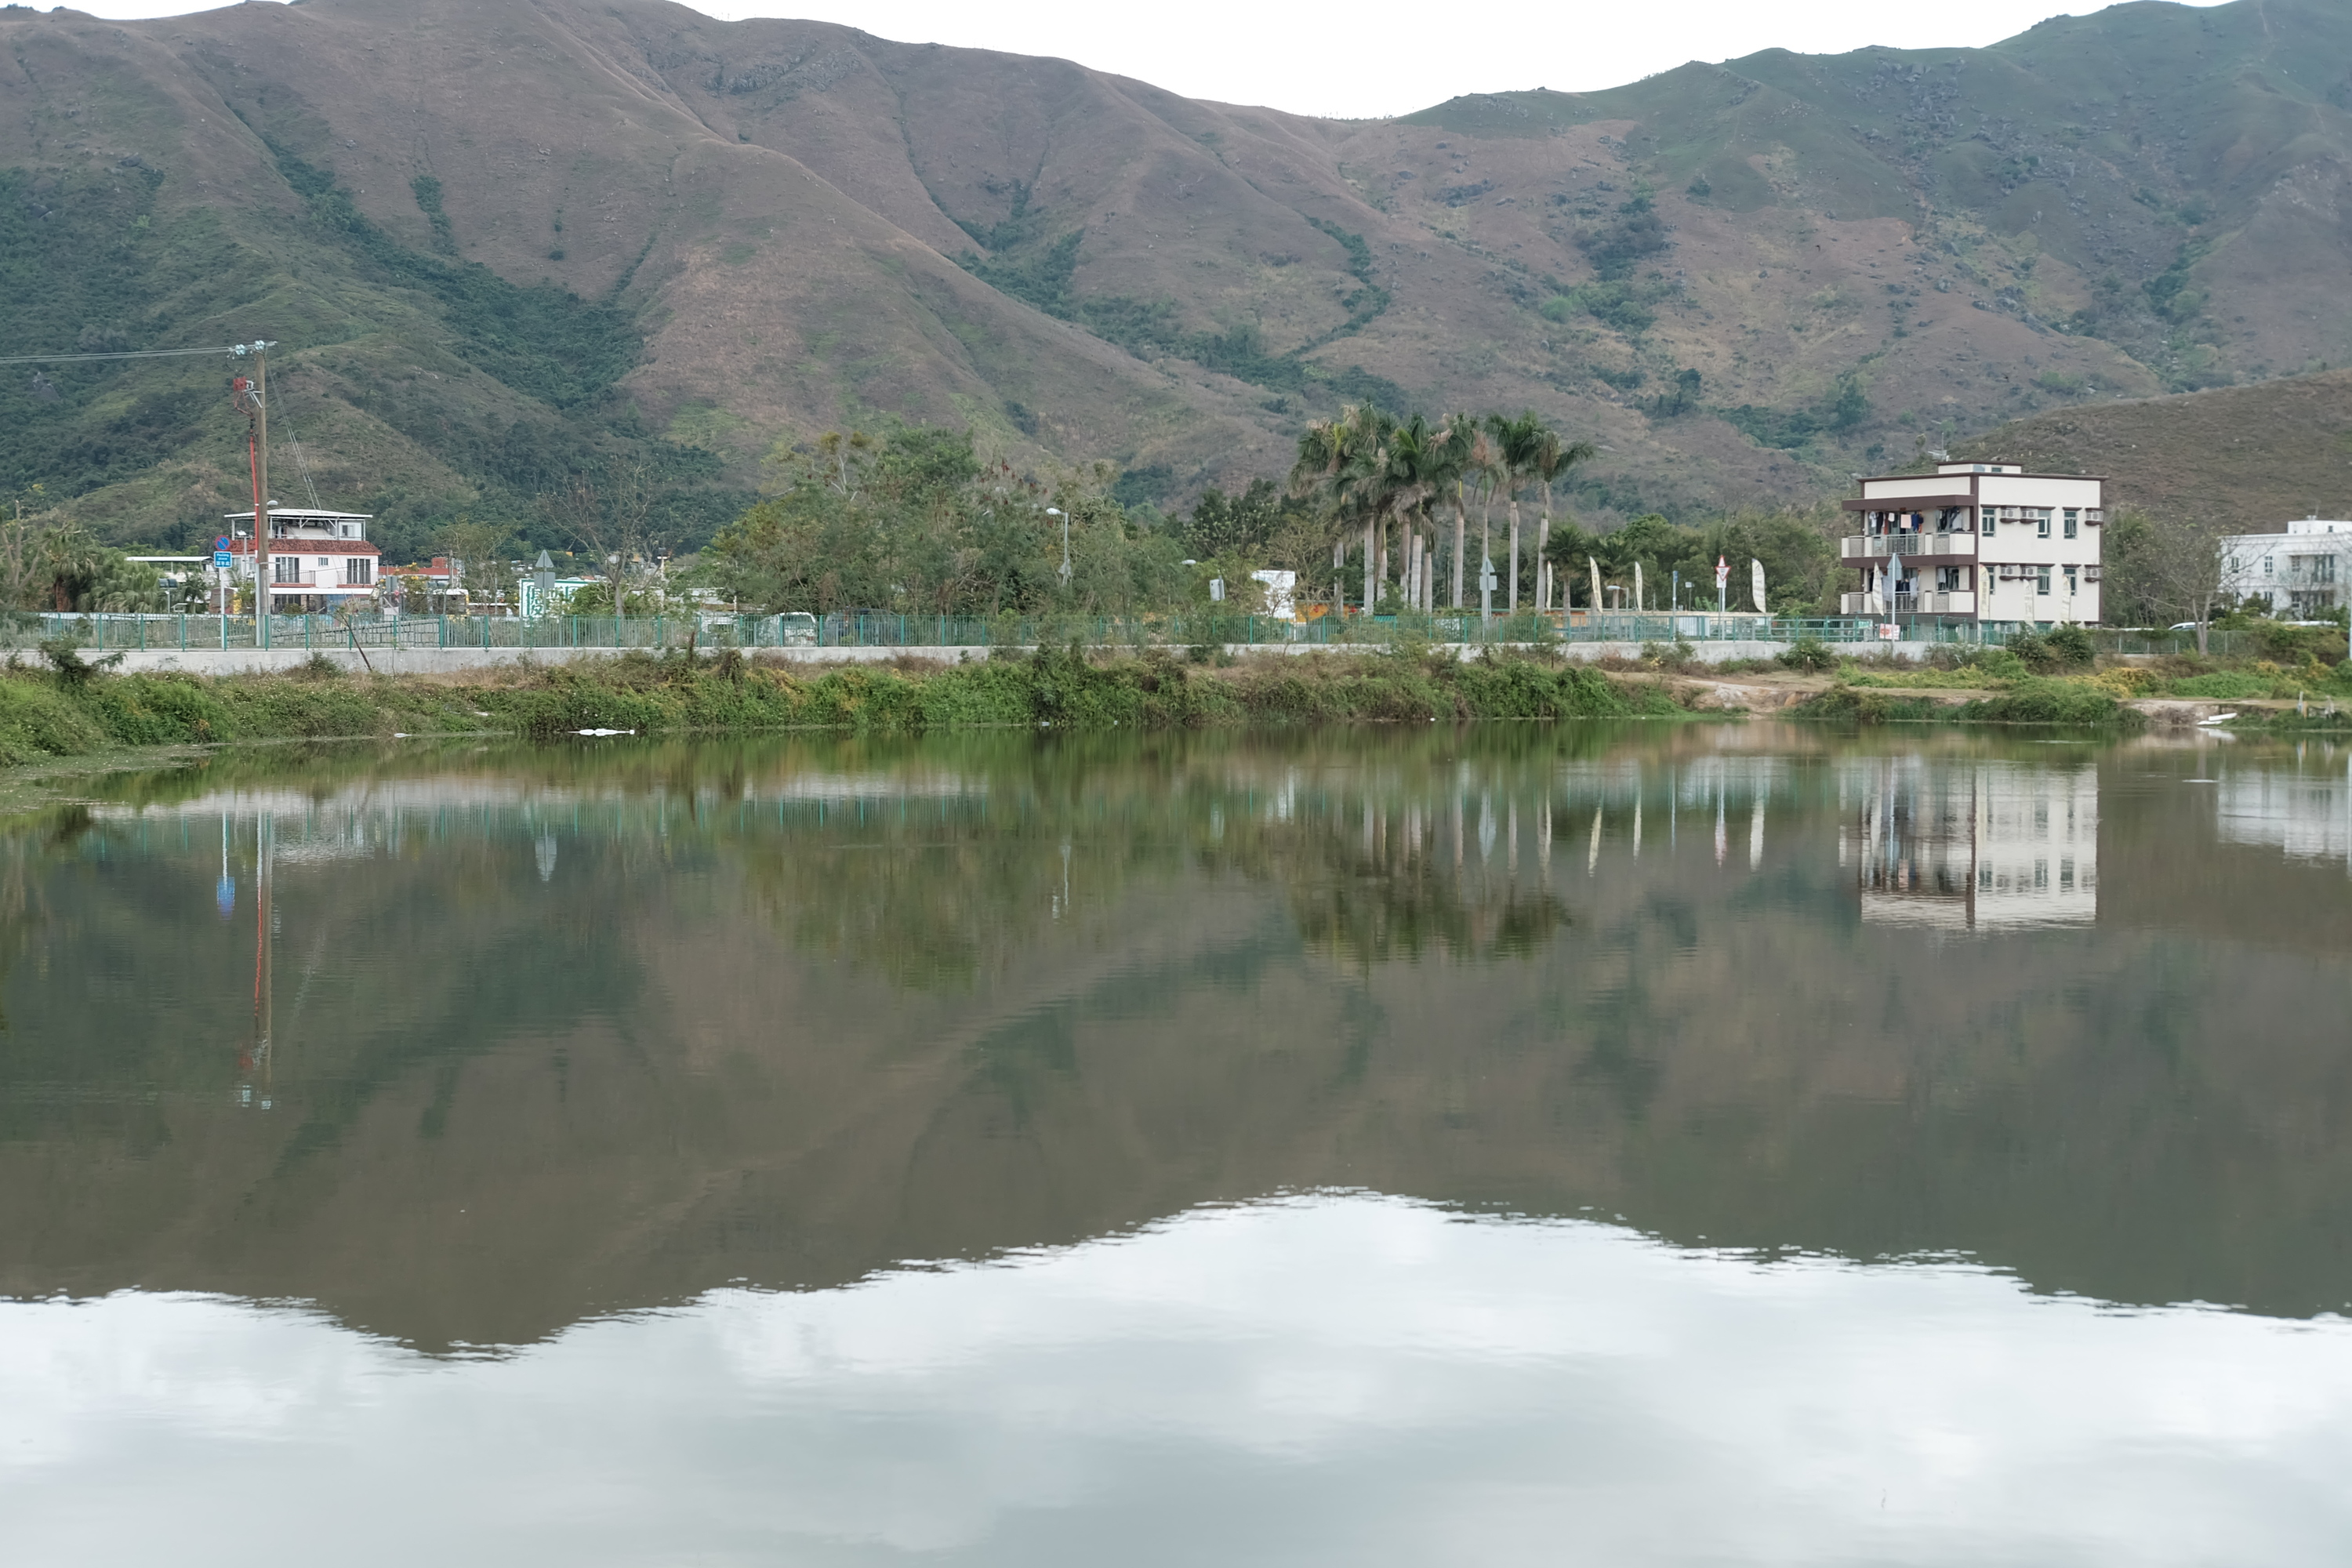 Shu Mei Village Pond